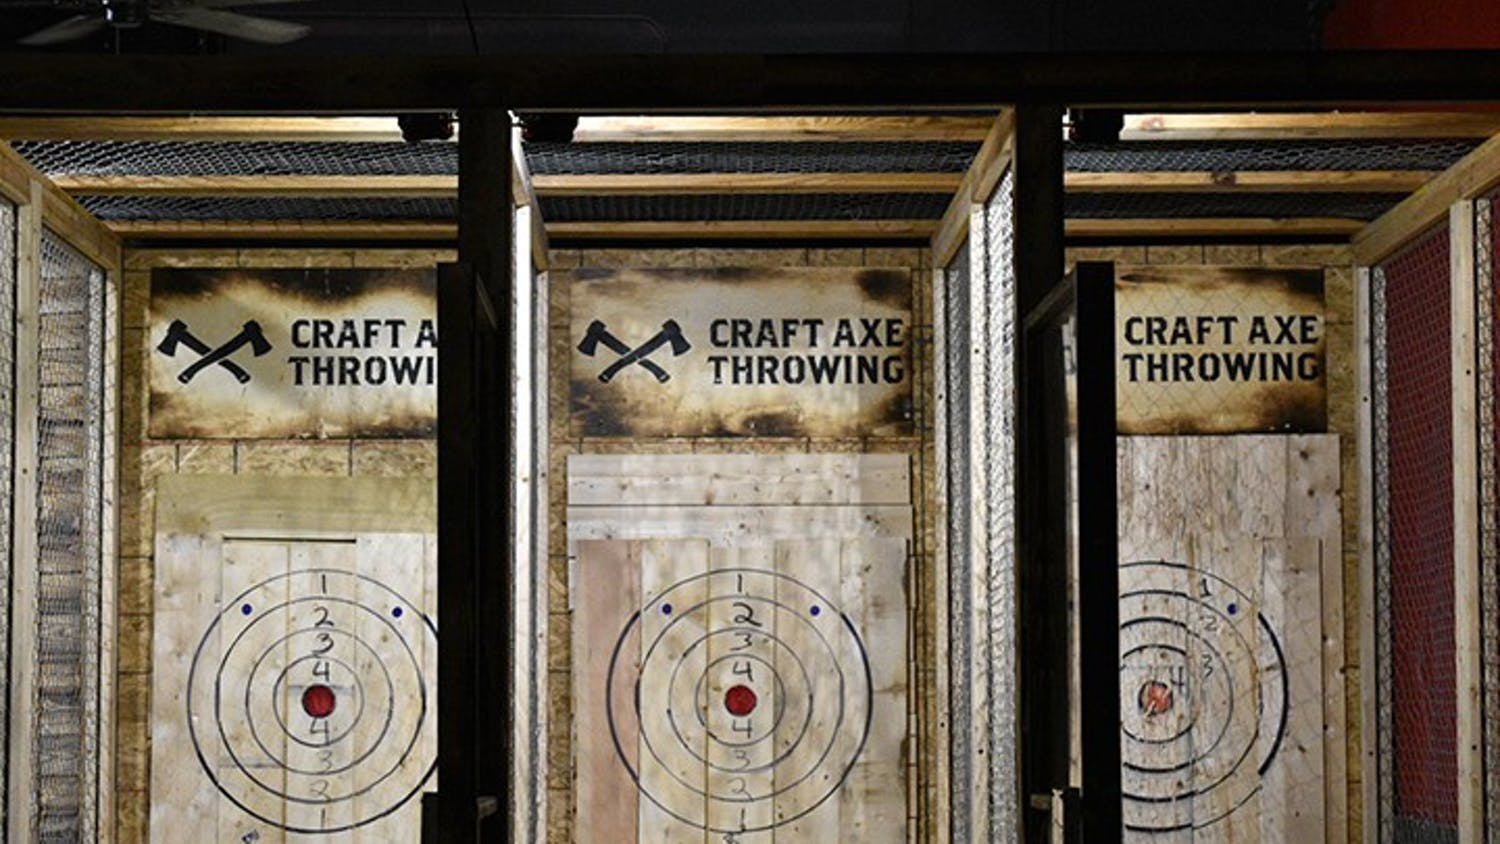 Craft Axe Throwing has divided lanes with bullseye's for customers to throw at.